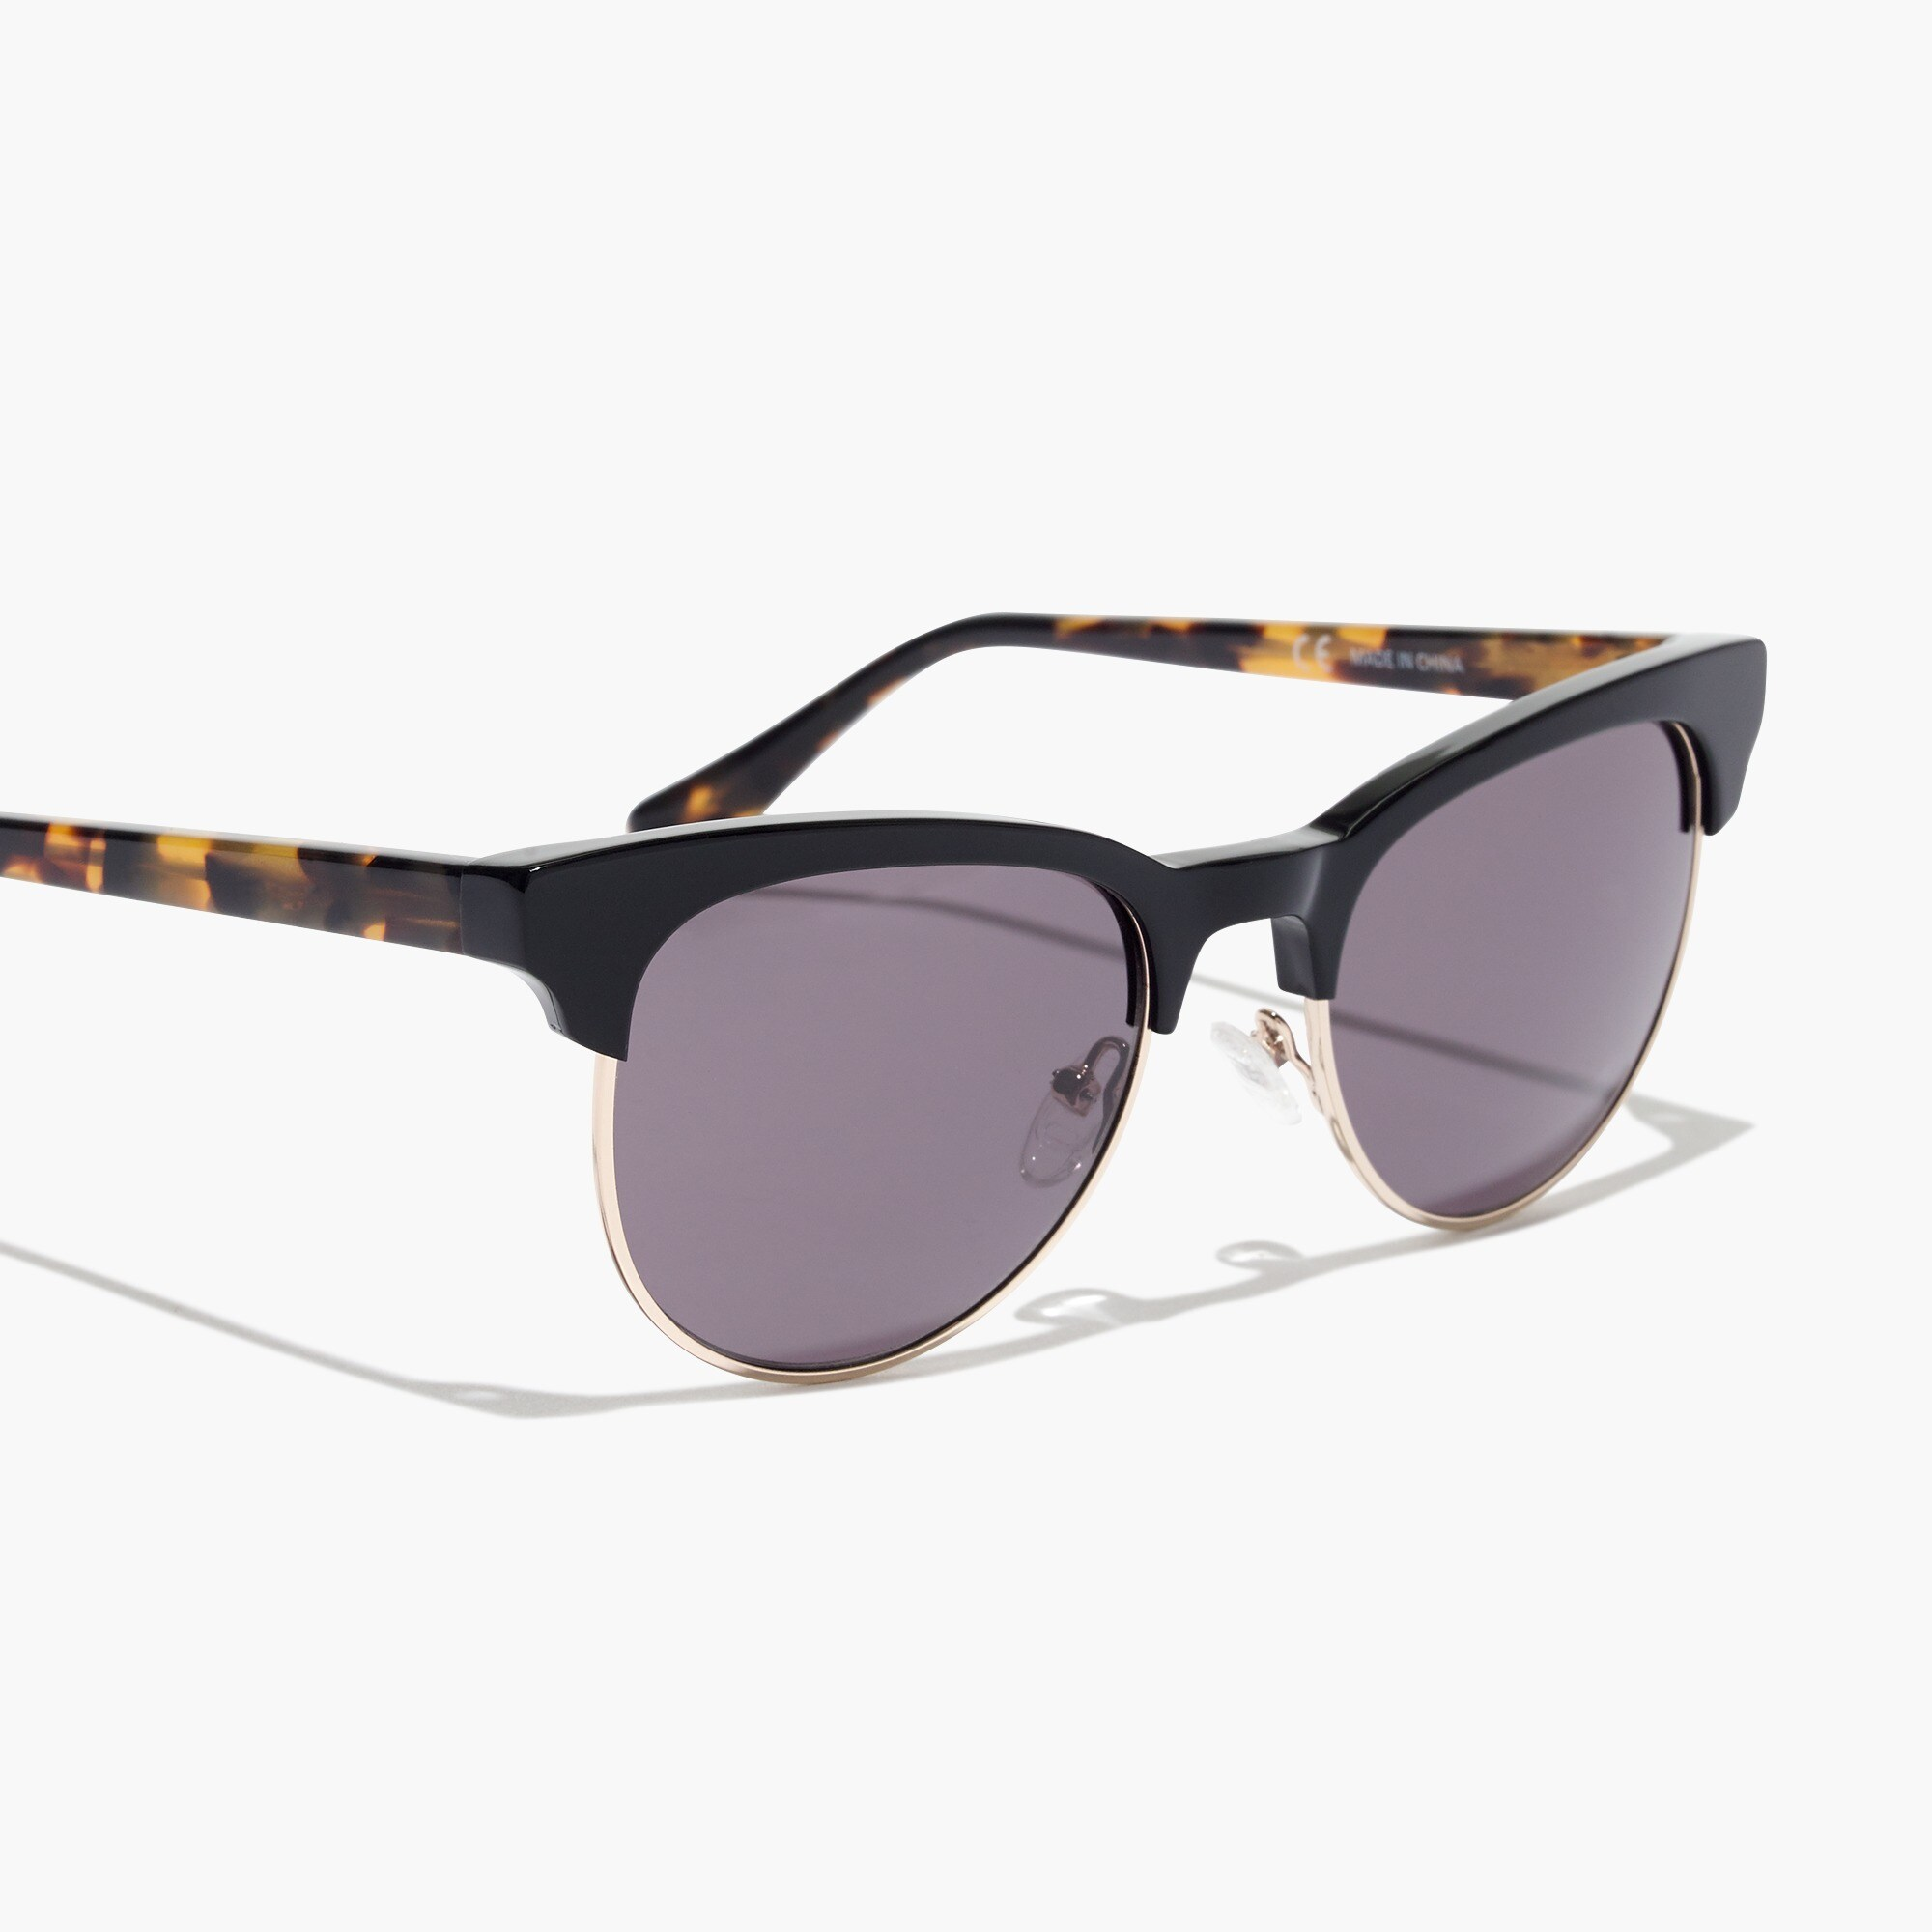 Boardwalk sunglasses